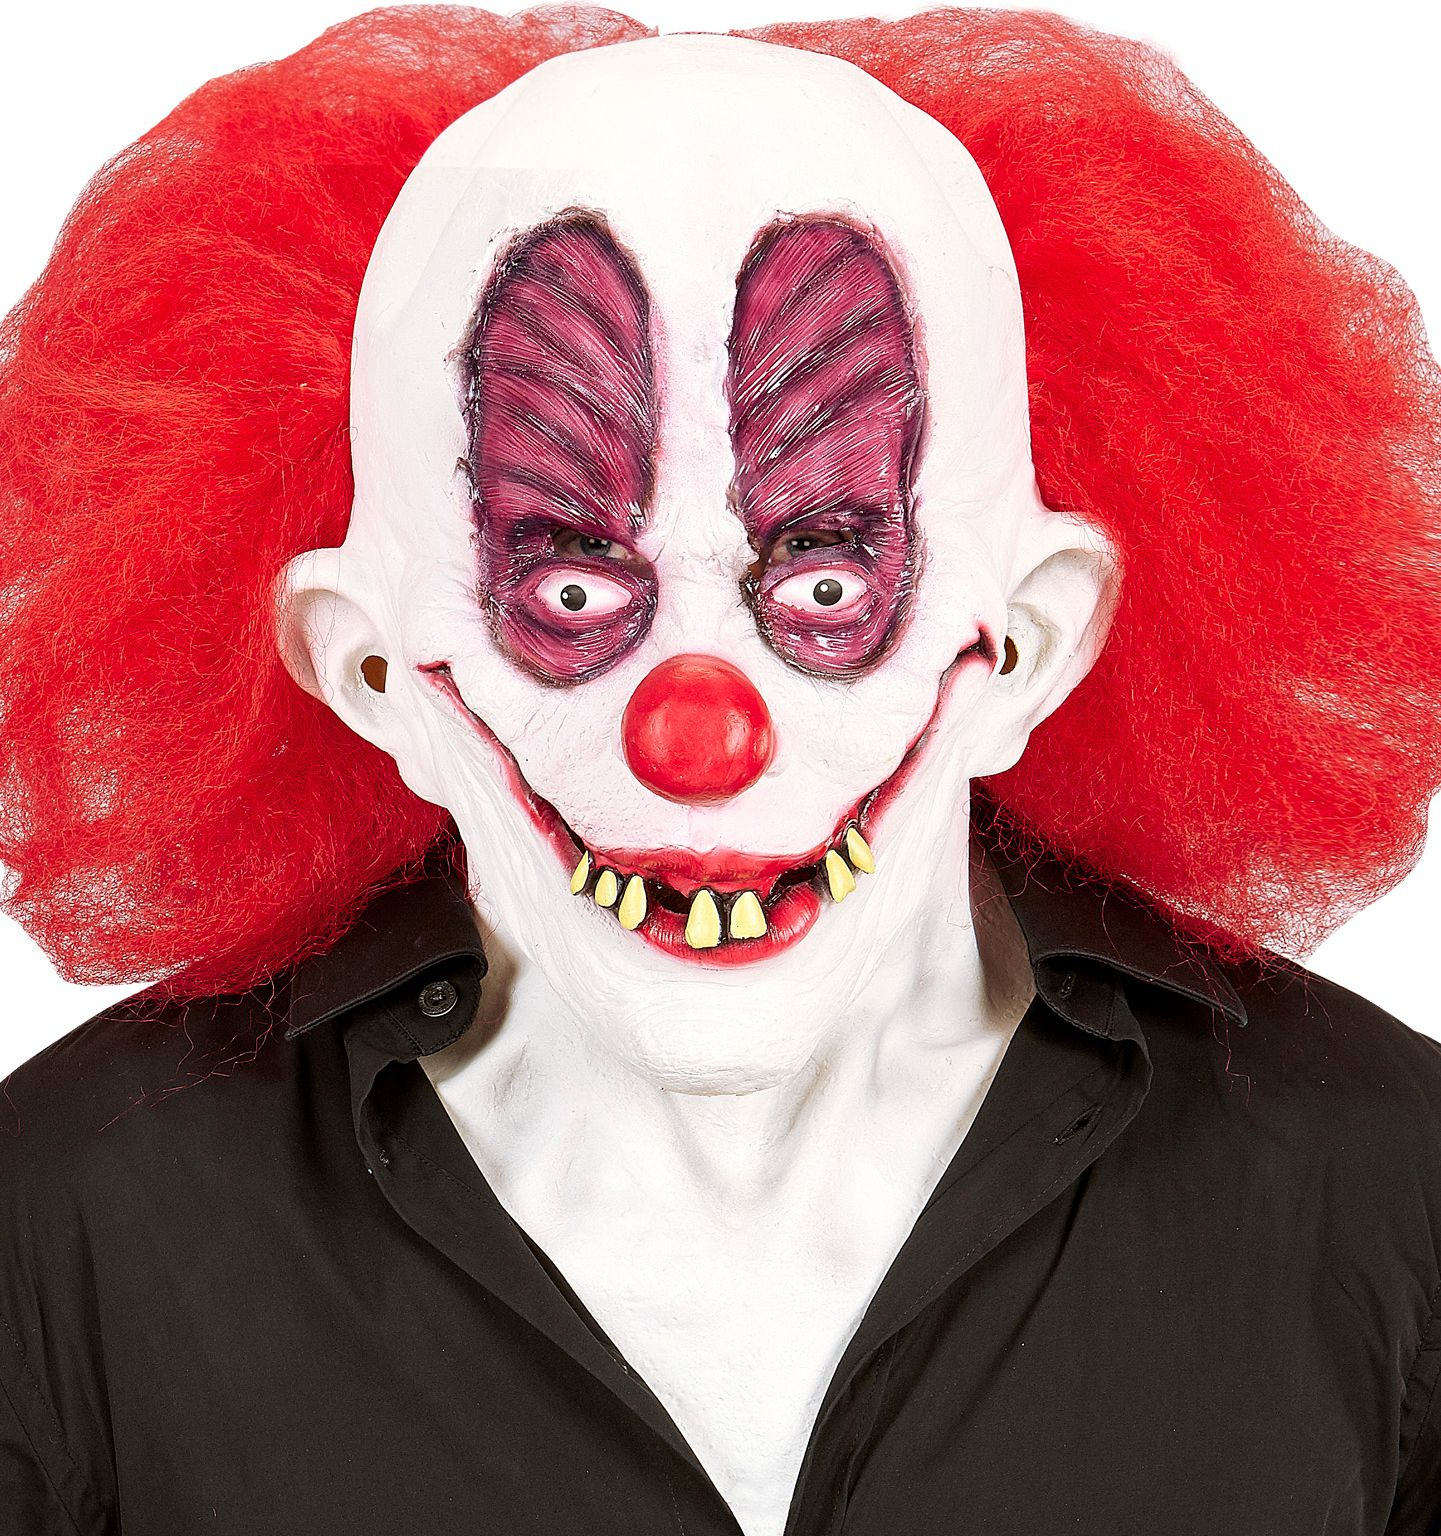 Horror clown masker met rode pruik